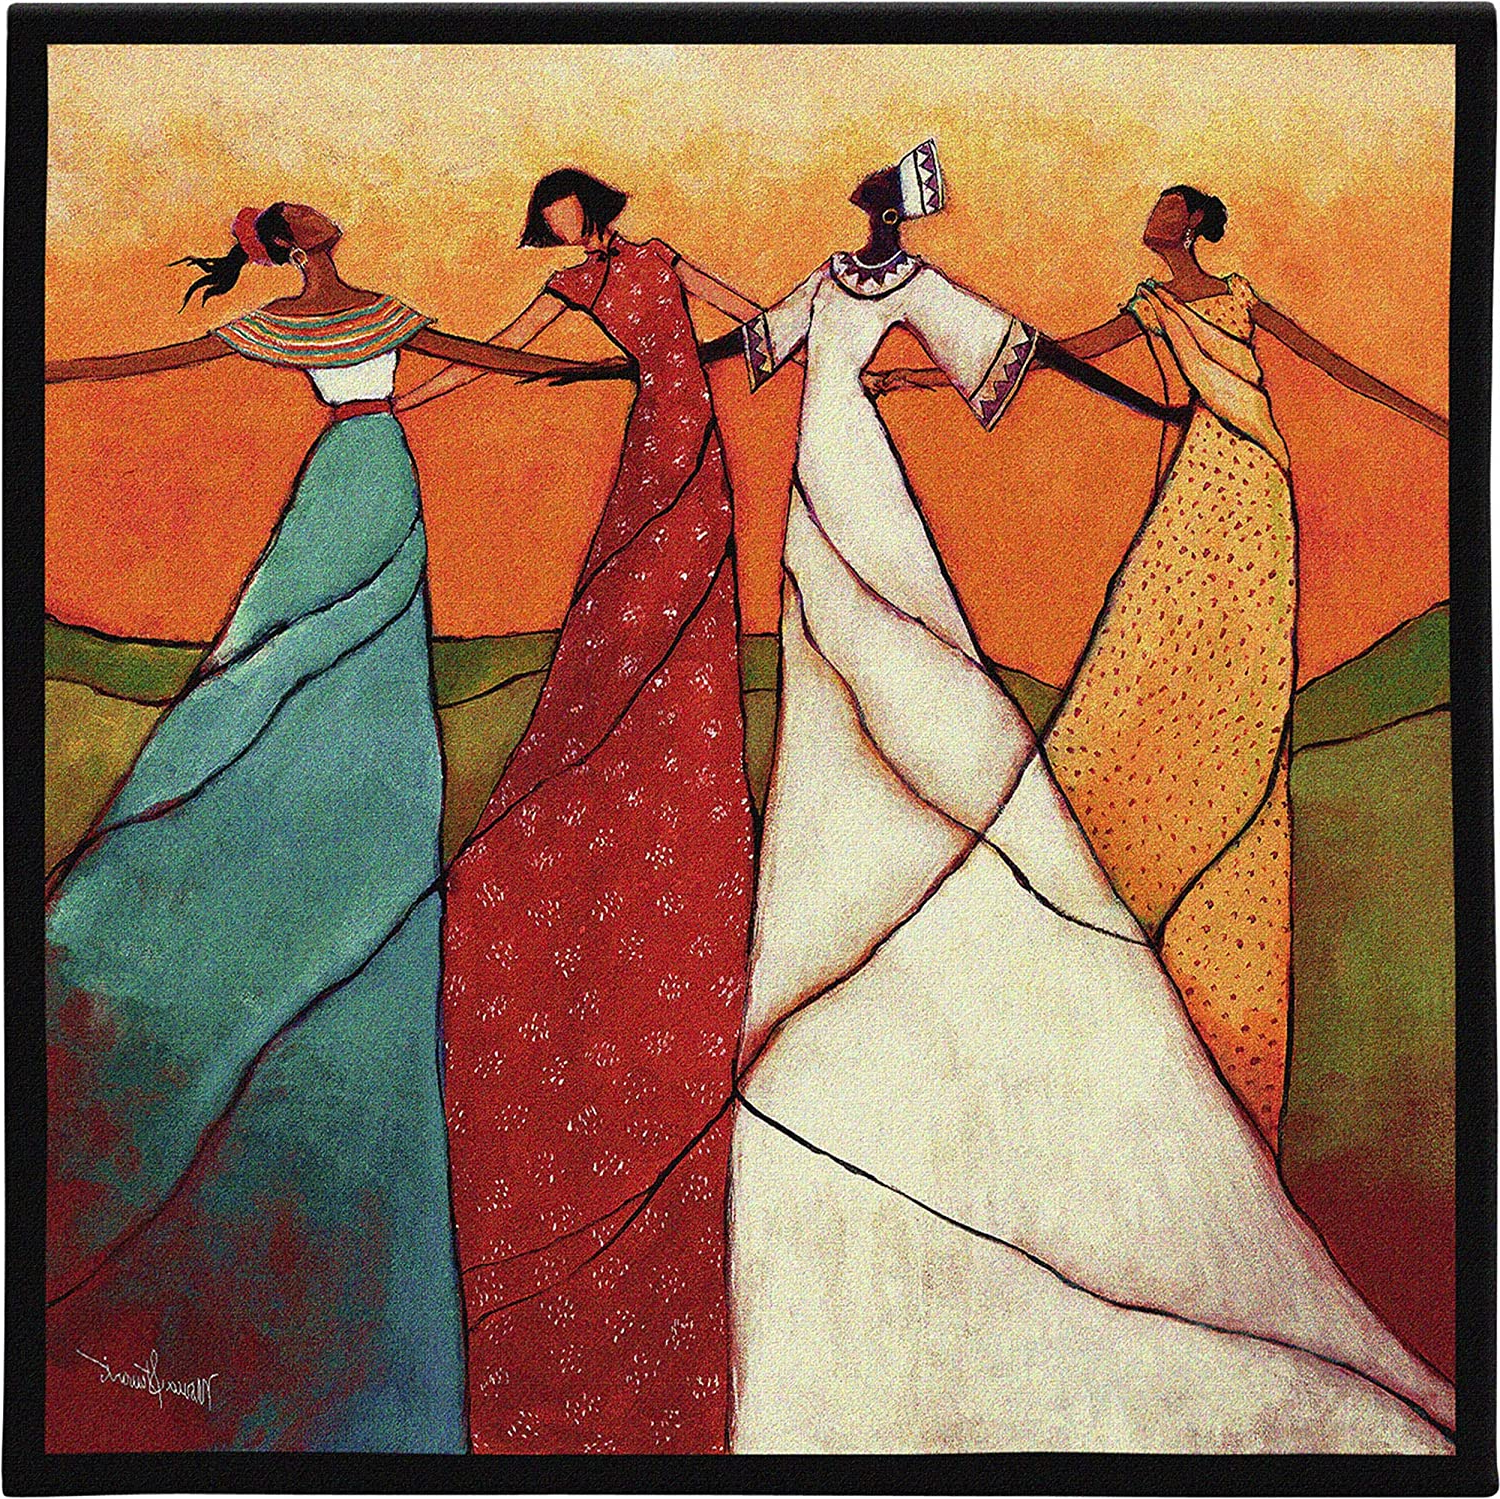 [%unitymonica Stewart | Woven Tapestry Wall Art Hanging | African Women Dancing | 100% Cotton Usa Size 31x31 Regarding Well Known Blended Fabric Vendanges (red) Wall Hangings|blended Fabric Vendanges (red) Wall Hangings For Latest Unitymonica Stewart | Woven Tapestry Wall Art Hanging | African Women Dancing | 100% Cotton Usa Size 31x31|latest Blended Fabric Vendanges (red) Wall Hangings Inside Unitymonica Stewart | Woven Tapestry Wall Art Hanging | African Women Dancing | 100% Cotton Usa Size 31x31|best And Newest Unitymonica Stewart | Woven Tapestry Wall Art Hanging | African Women Dancing | 100% Cotton Usa Size 31x31 Throughout Blended Fabric Vendanges (red) Wall Hangings%] (View 18 of 20)